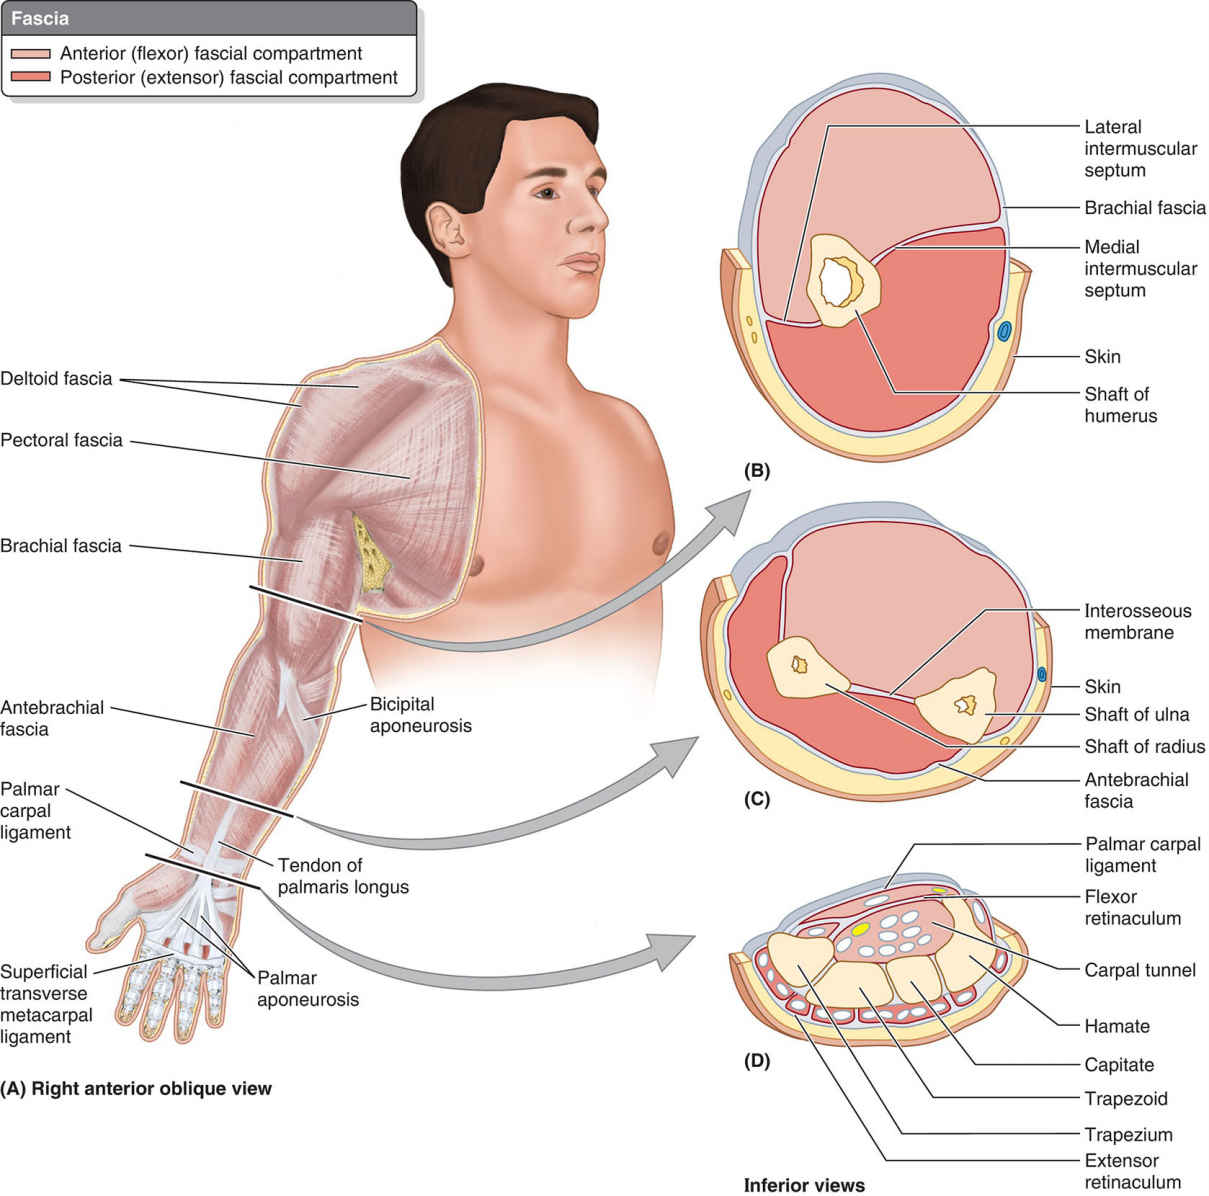 Fascia And Compartments Of Upper Limb Anatomical Diagram